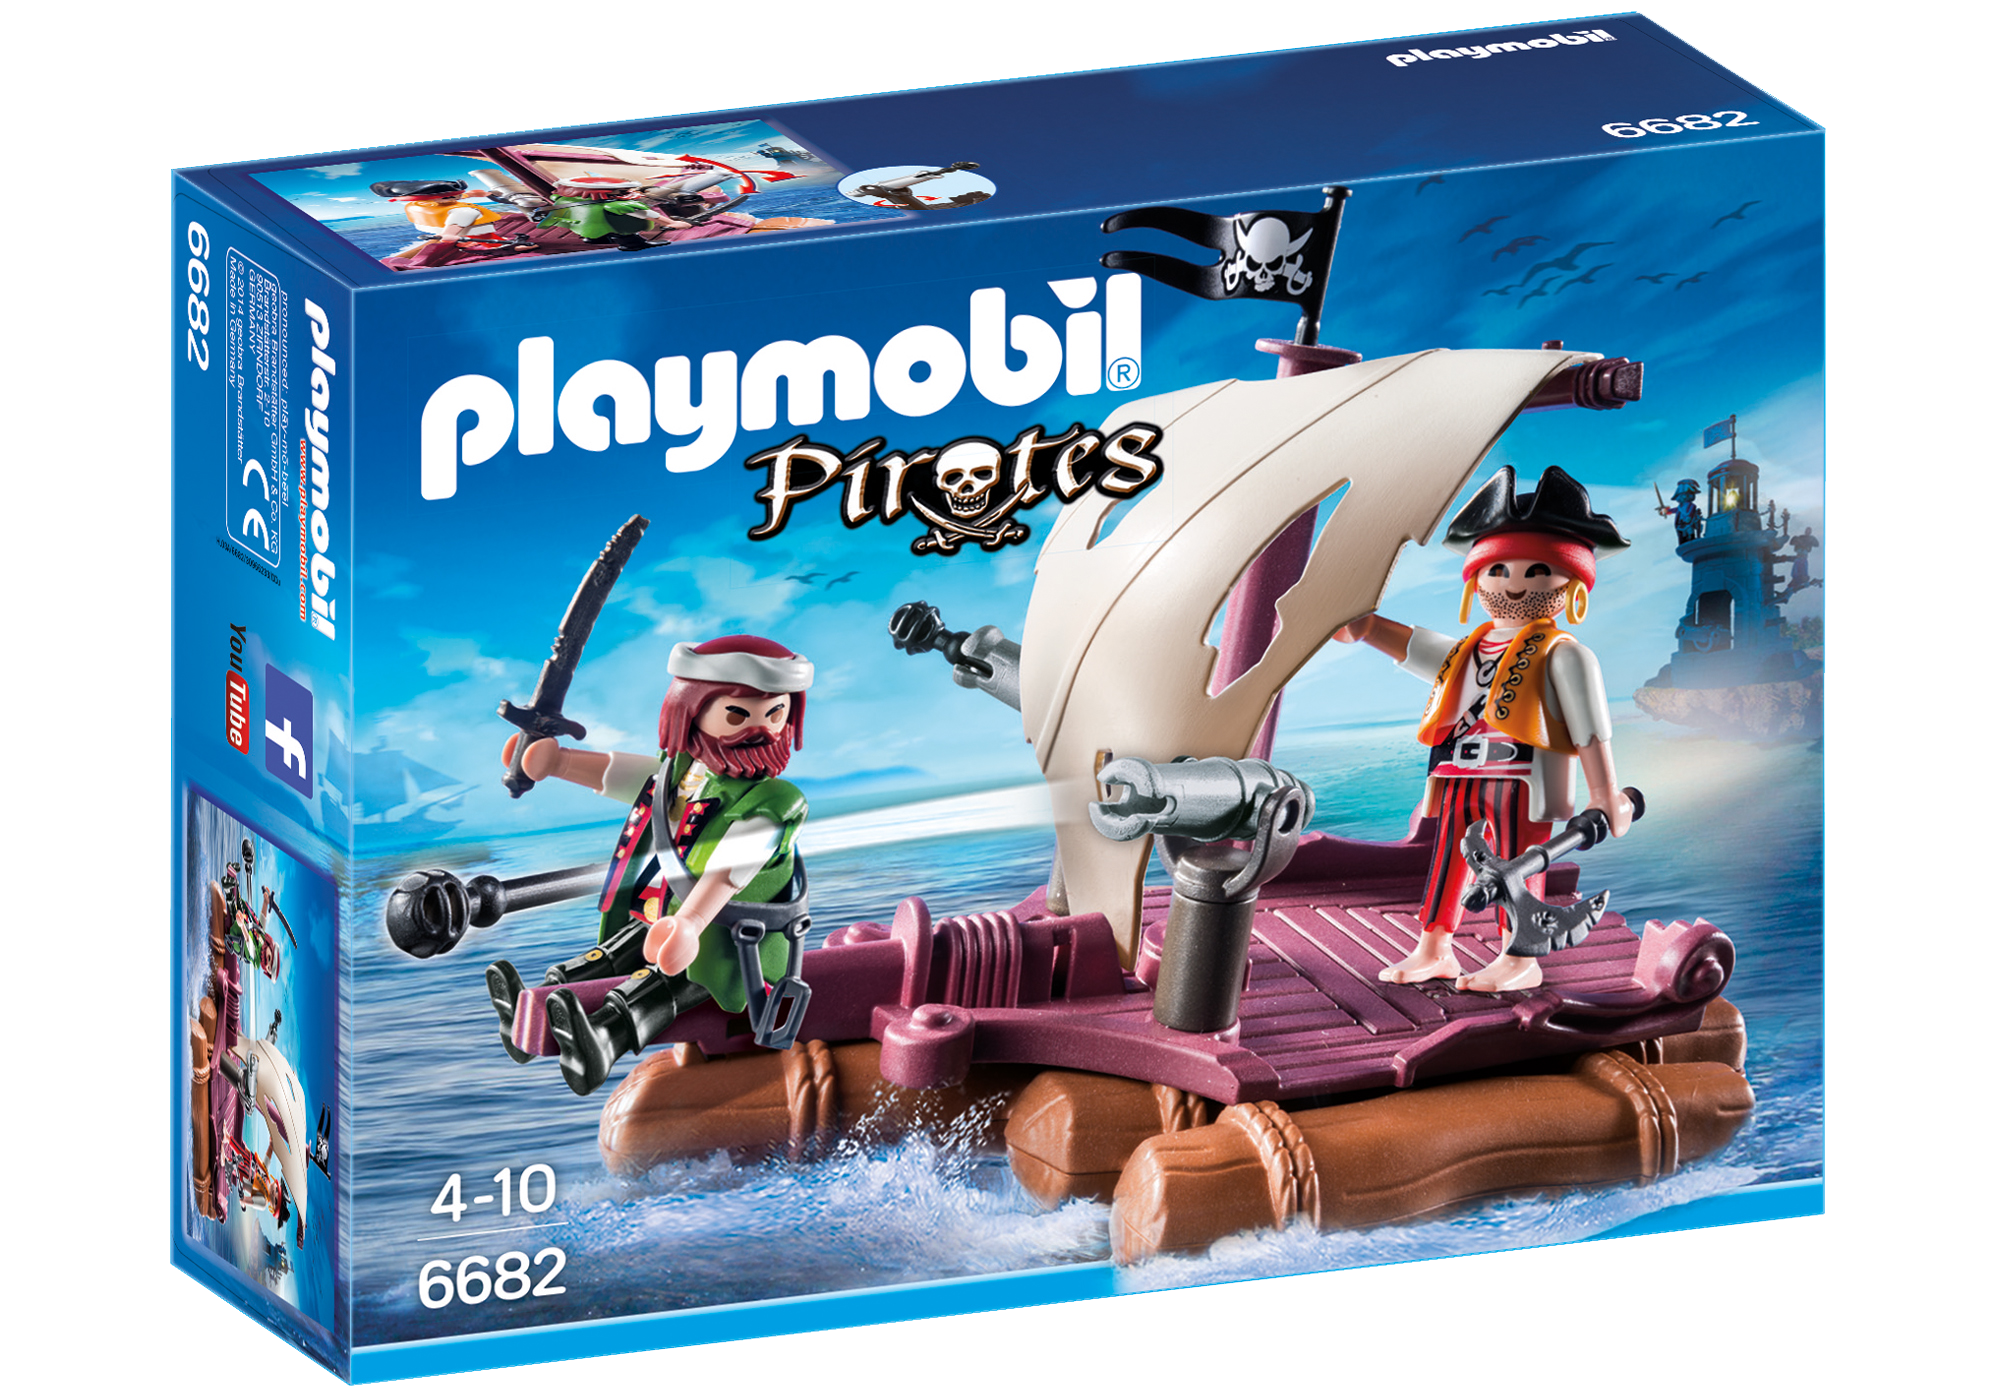 http://media.playmobil.com/i/playmobil/6682_product_box_front/Pirate Raft